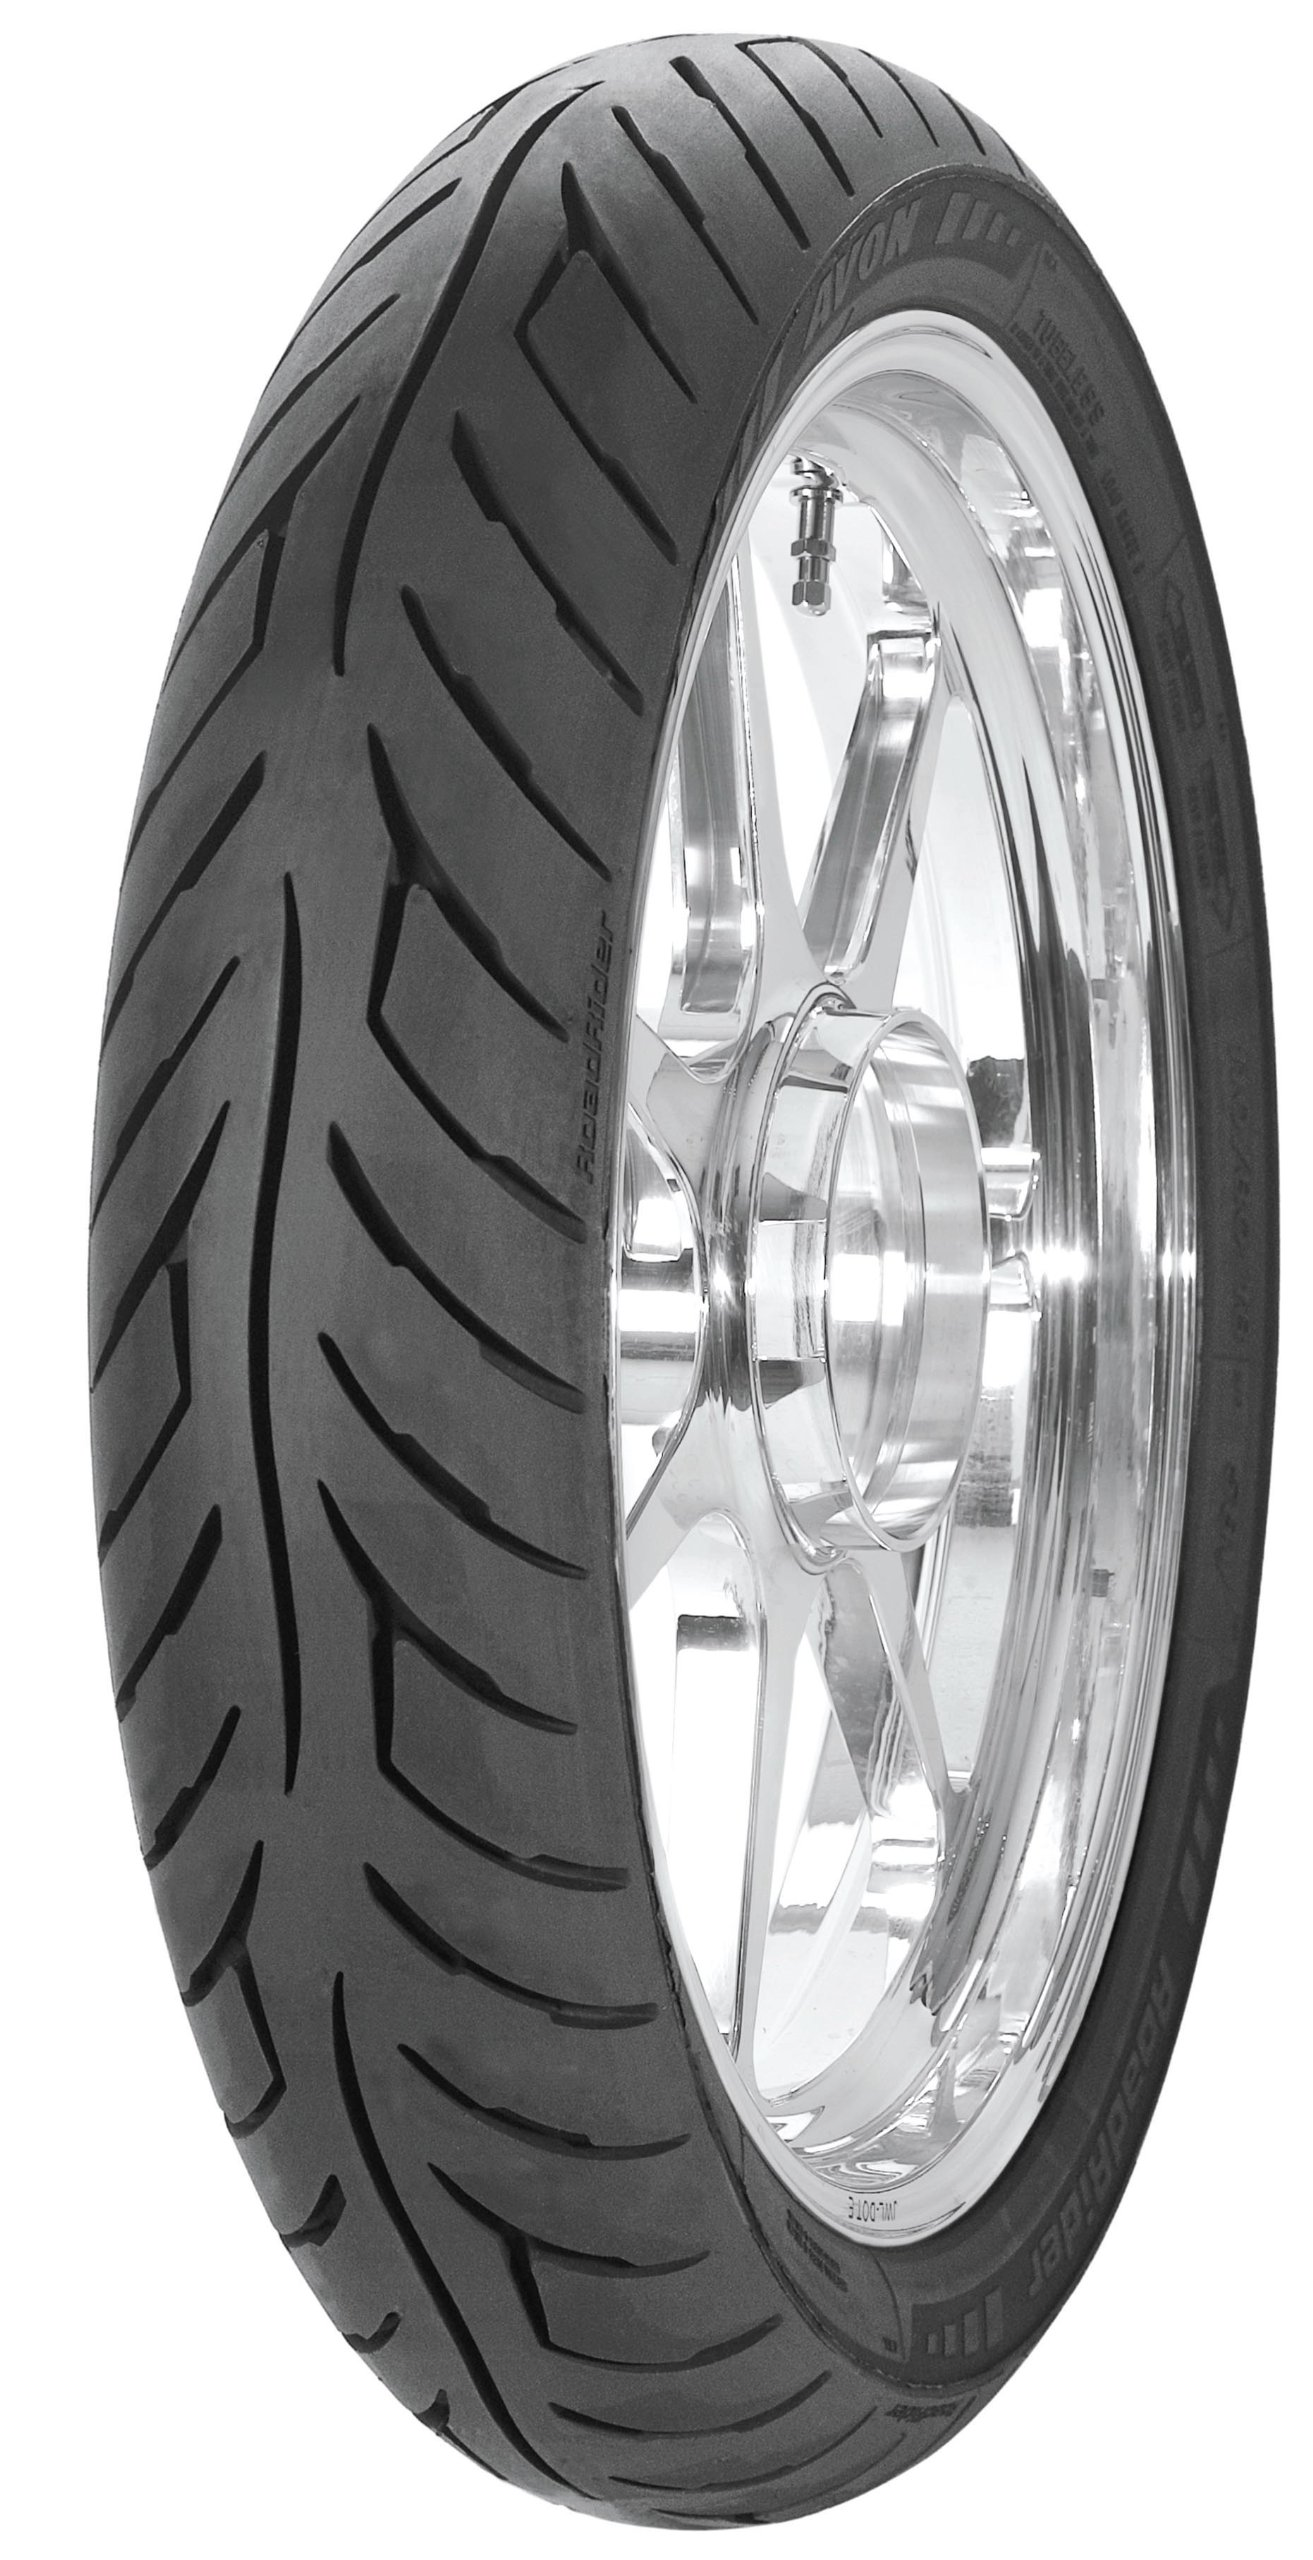 Avon AM26 Cruiser Motorcycle Tire Front -90/90-18